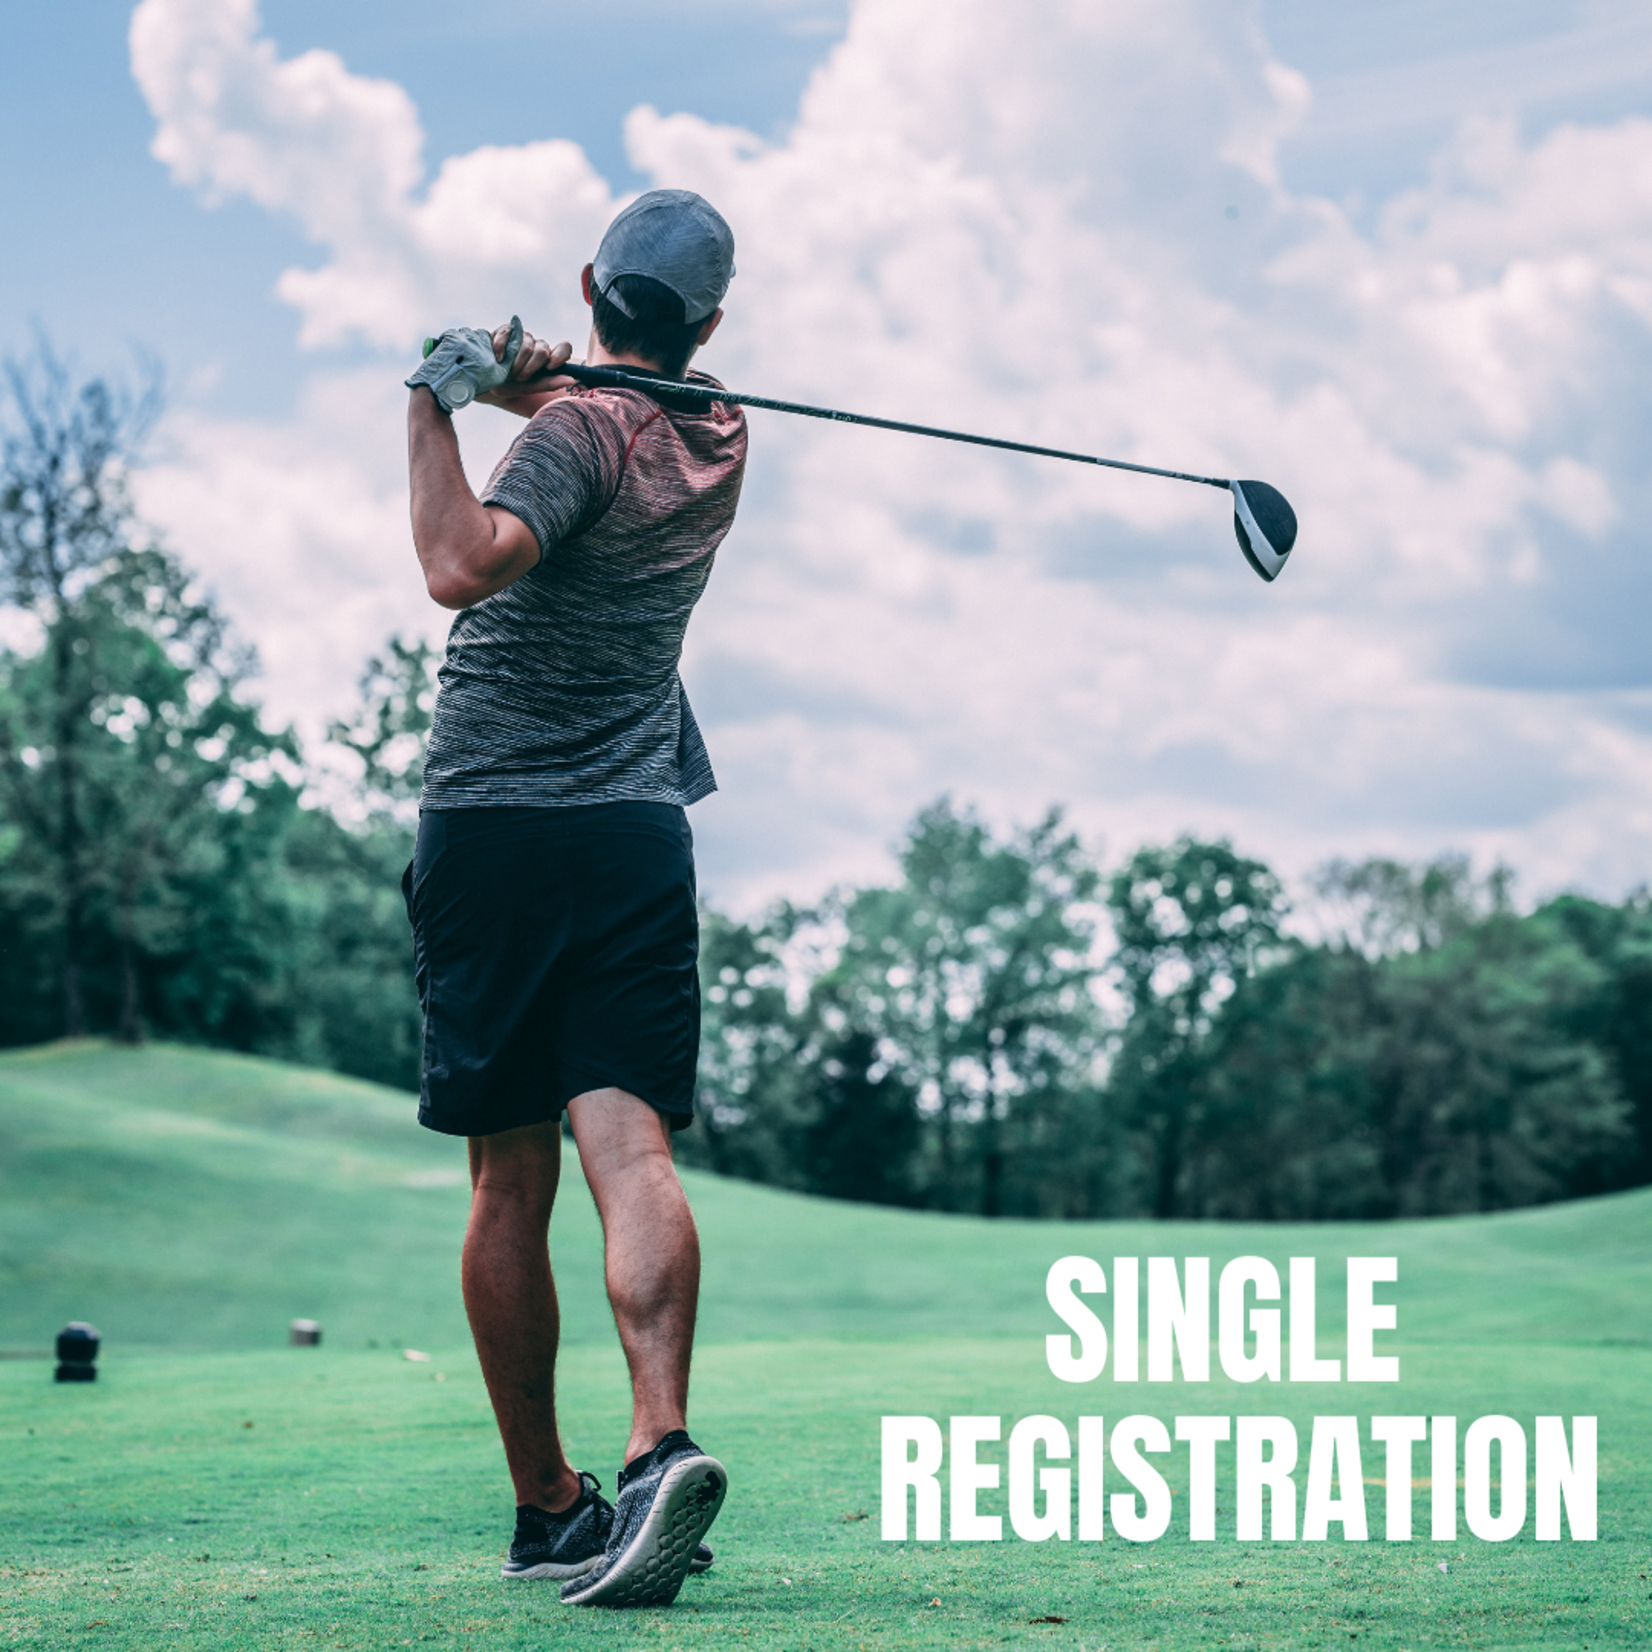 Skaters North The Station and Skaters North Golf Tournament-Single Registration